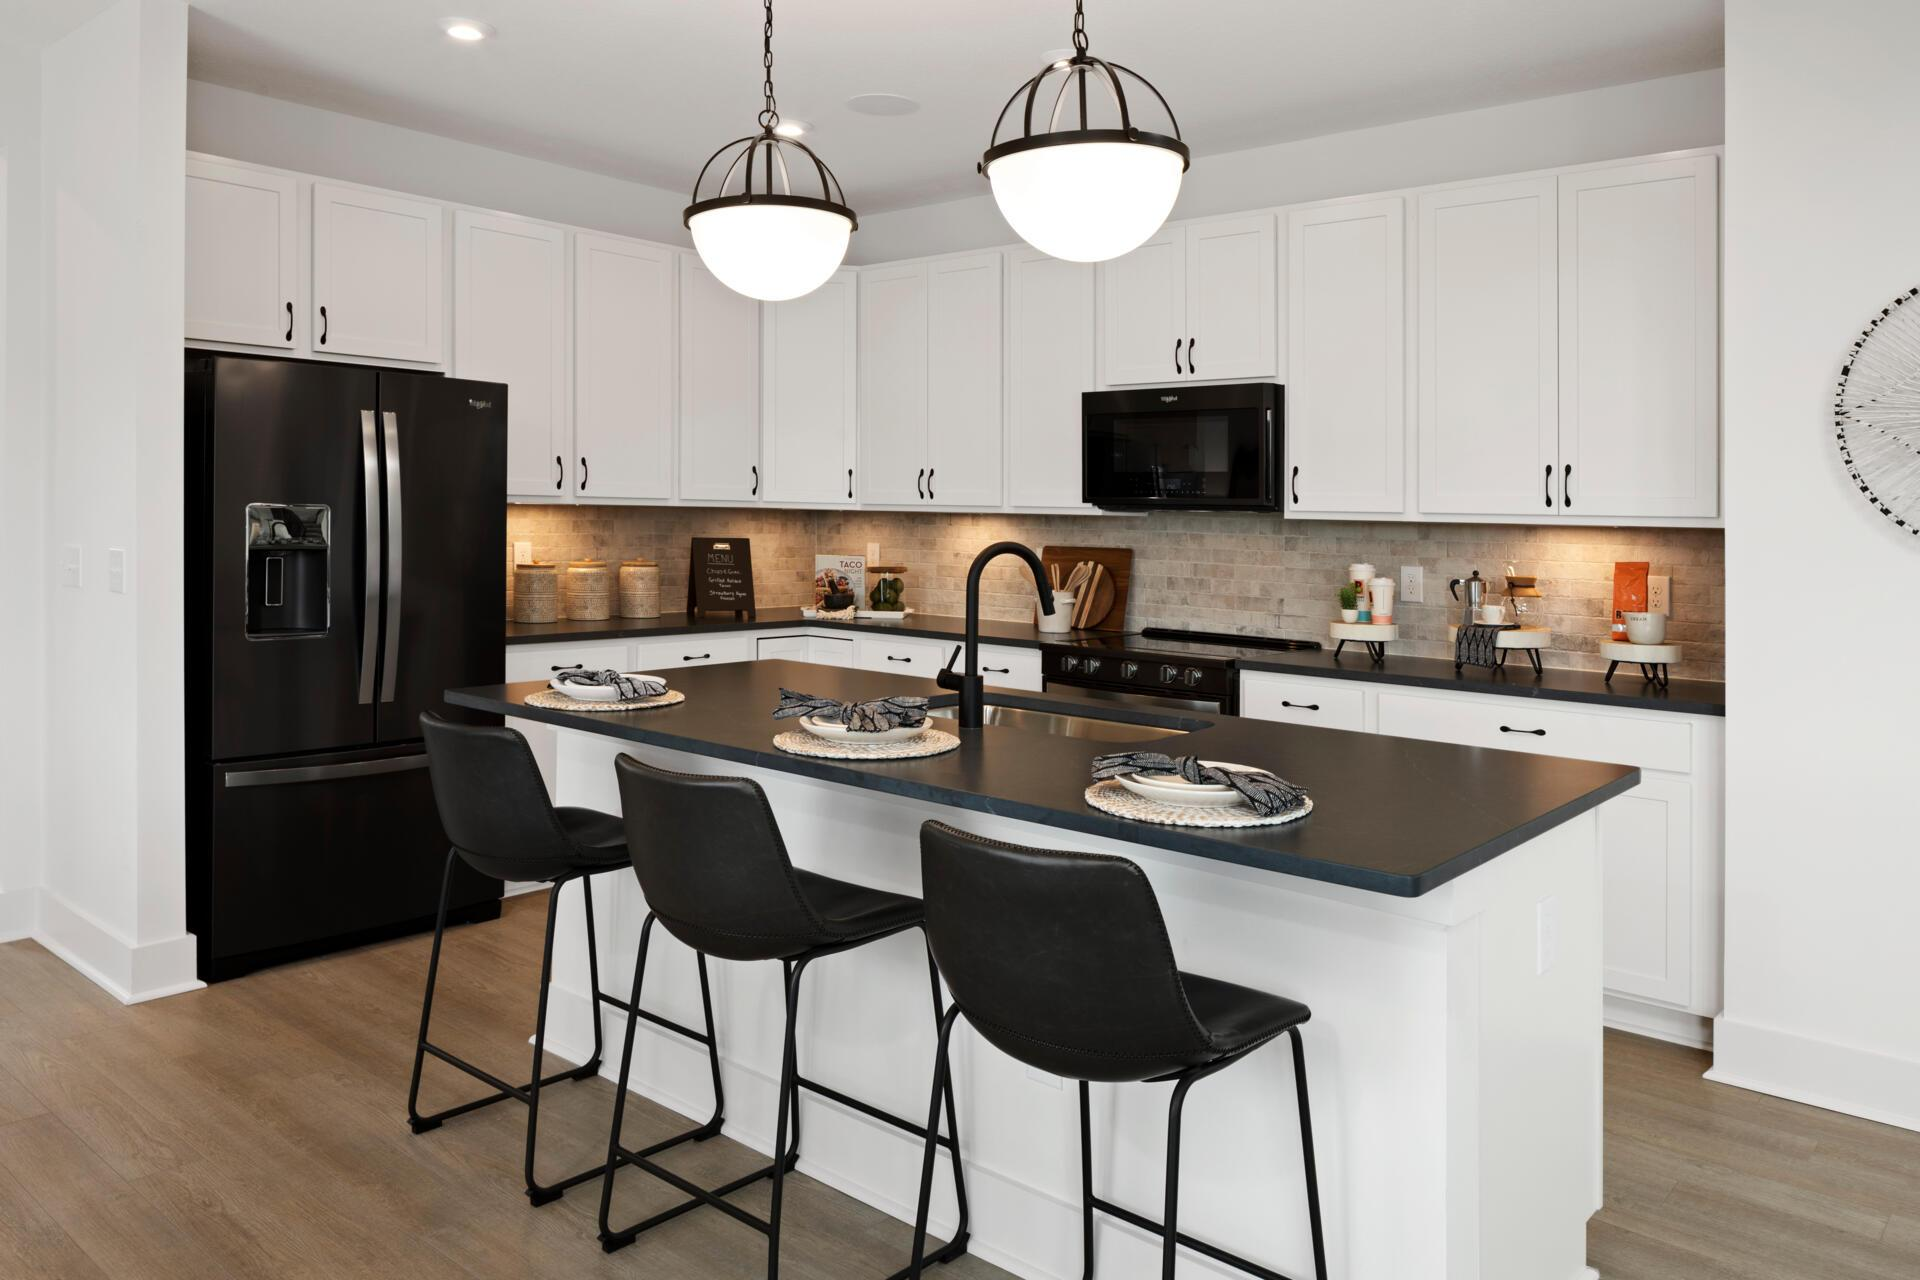 Kitchen featured in the Wembley By Drees Homes in Cincinnati, OH